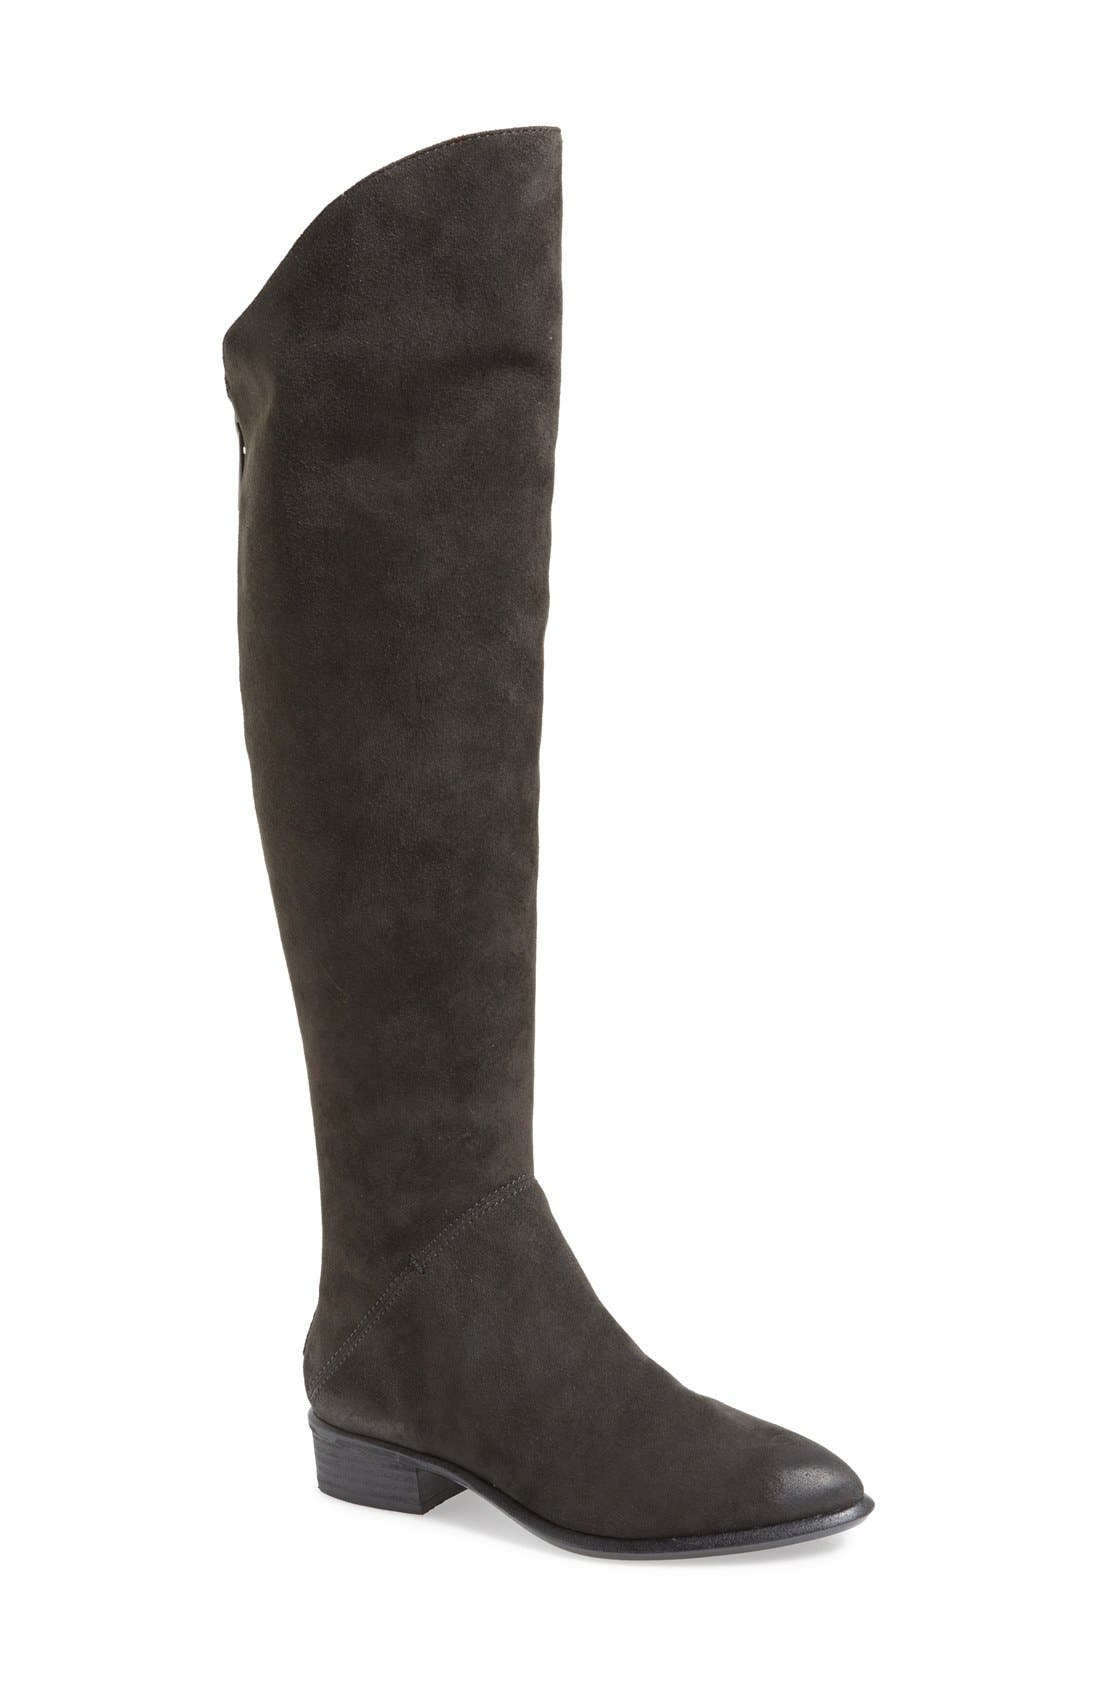 Main Image - Dolce Vita 'Meris' Boot (Women)